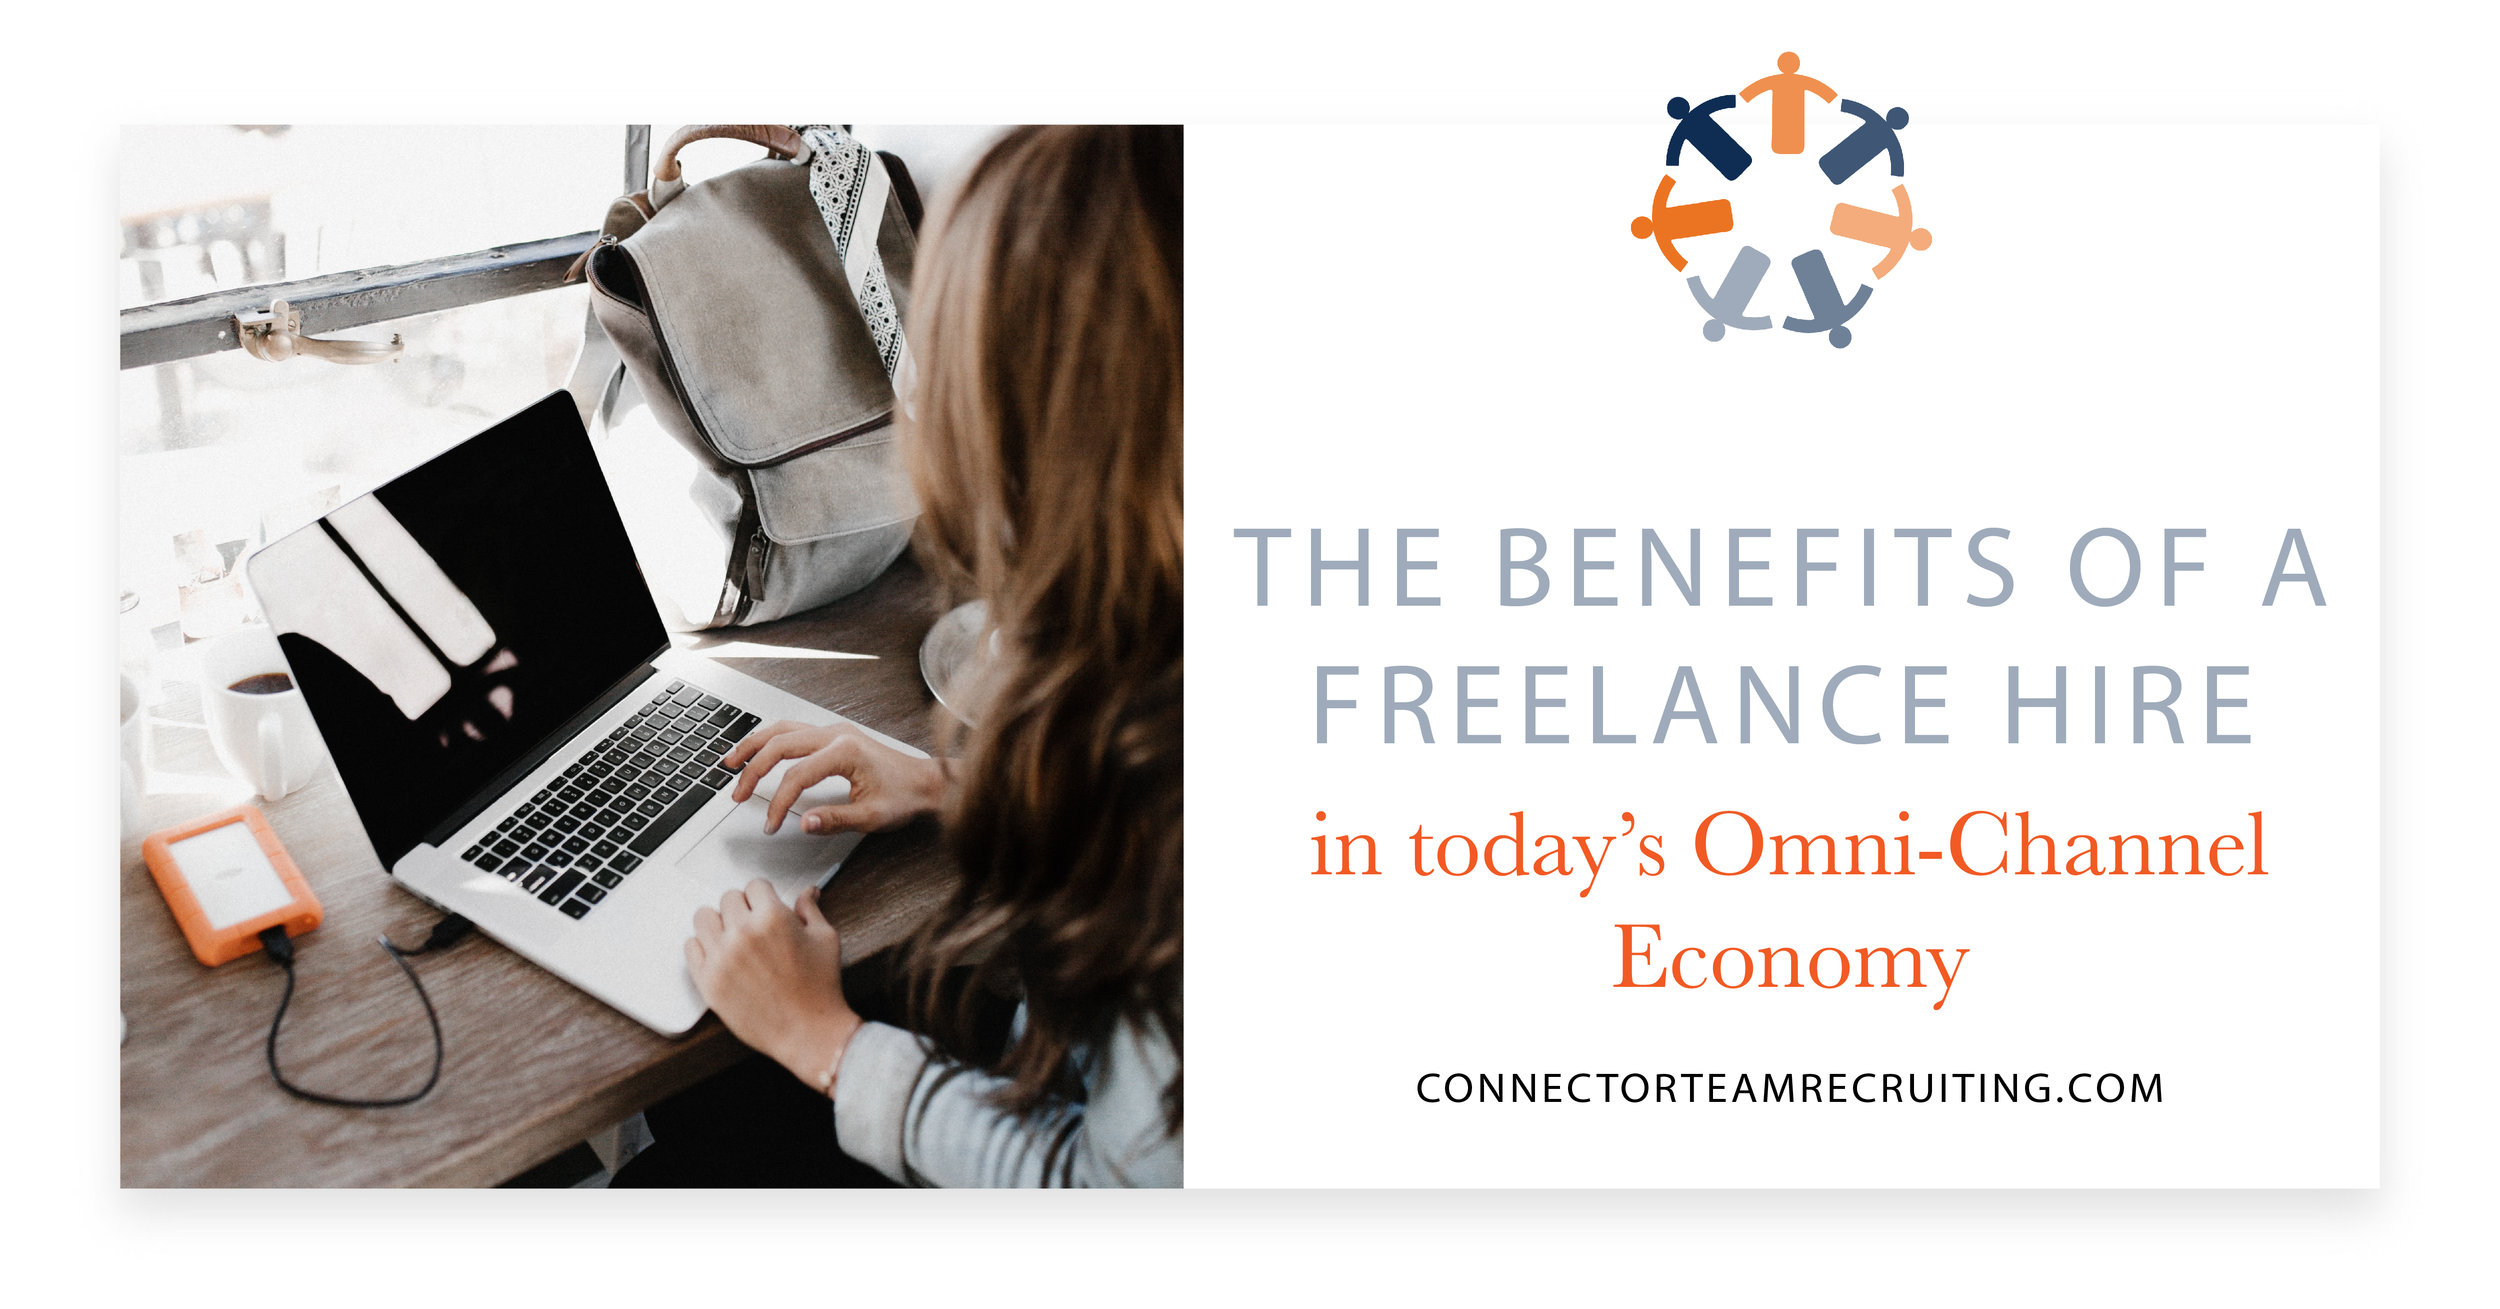 The benefits of a Freelance hire in today's Omni-Channel Economy | Connector Team Recruiting.jpg